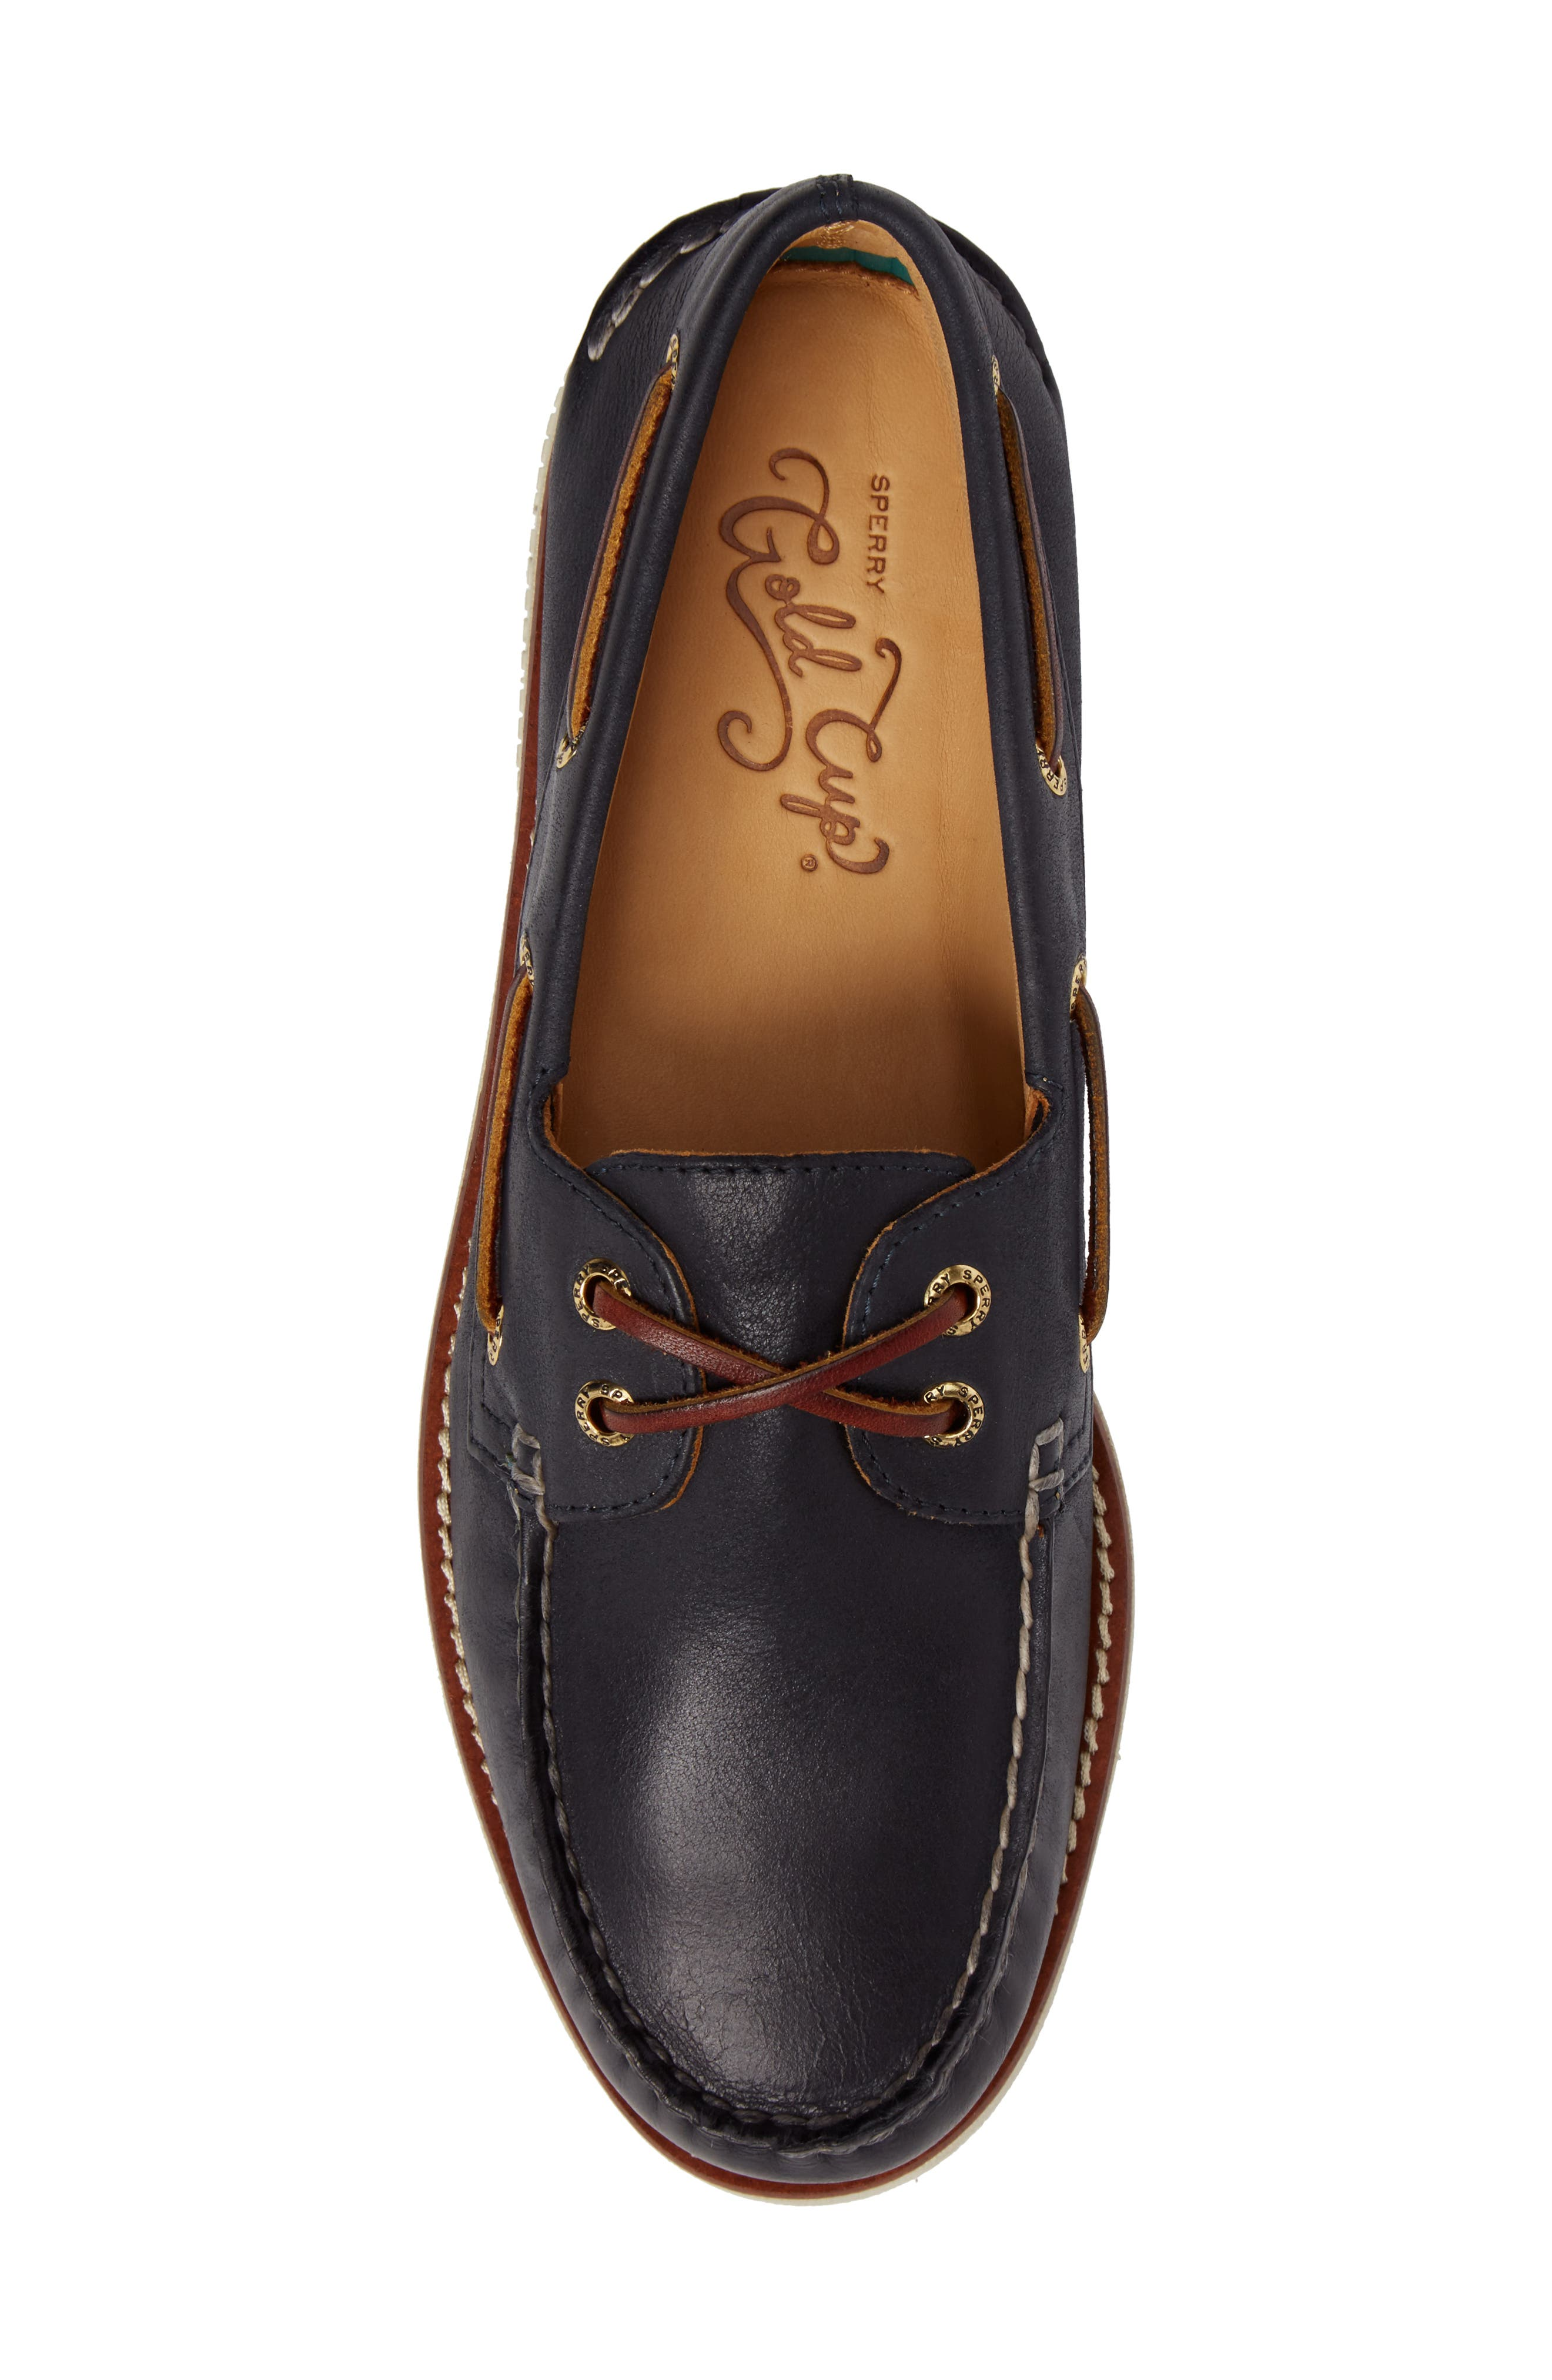 'Gold Cup - Authentic Original' Boat Shoe,                             Alternate thumbnail 5, color,                             NAVY LEATHER